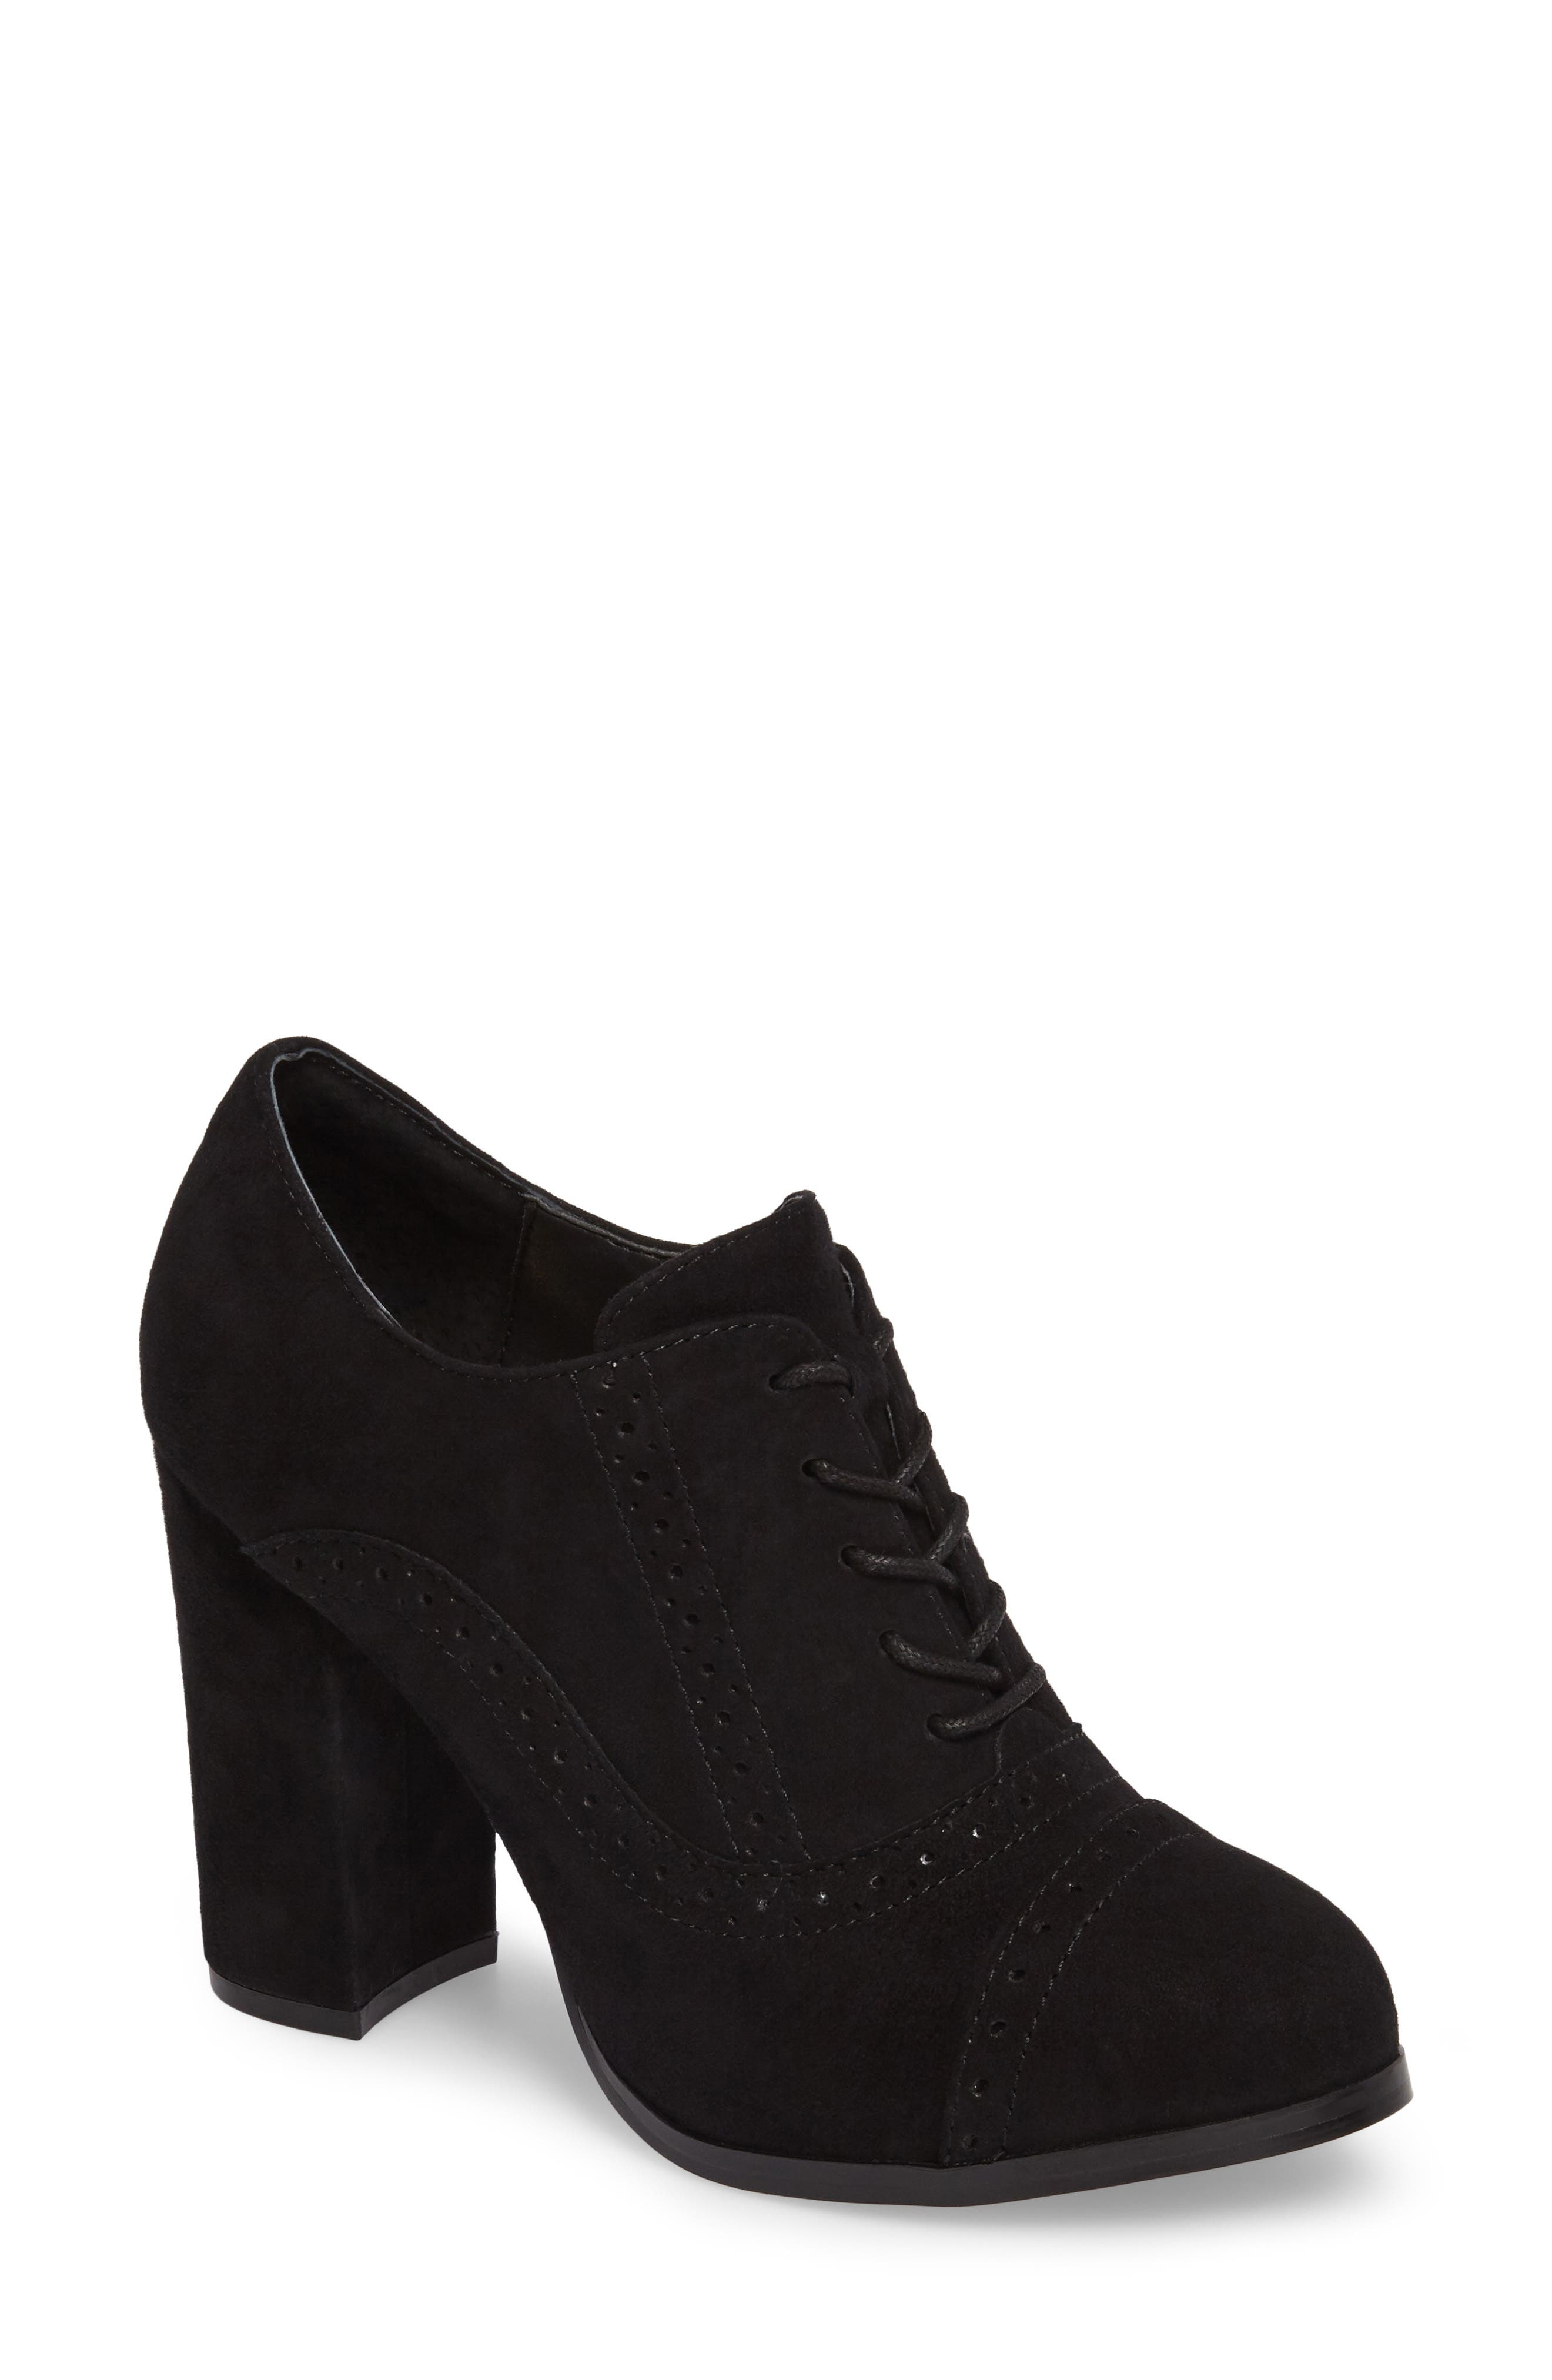 ISOLÁ, Holli Oxford Pump, Main thumbnail 1, color, BLACK SUEDE